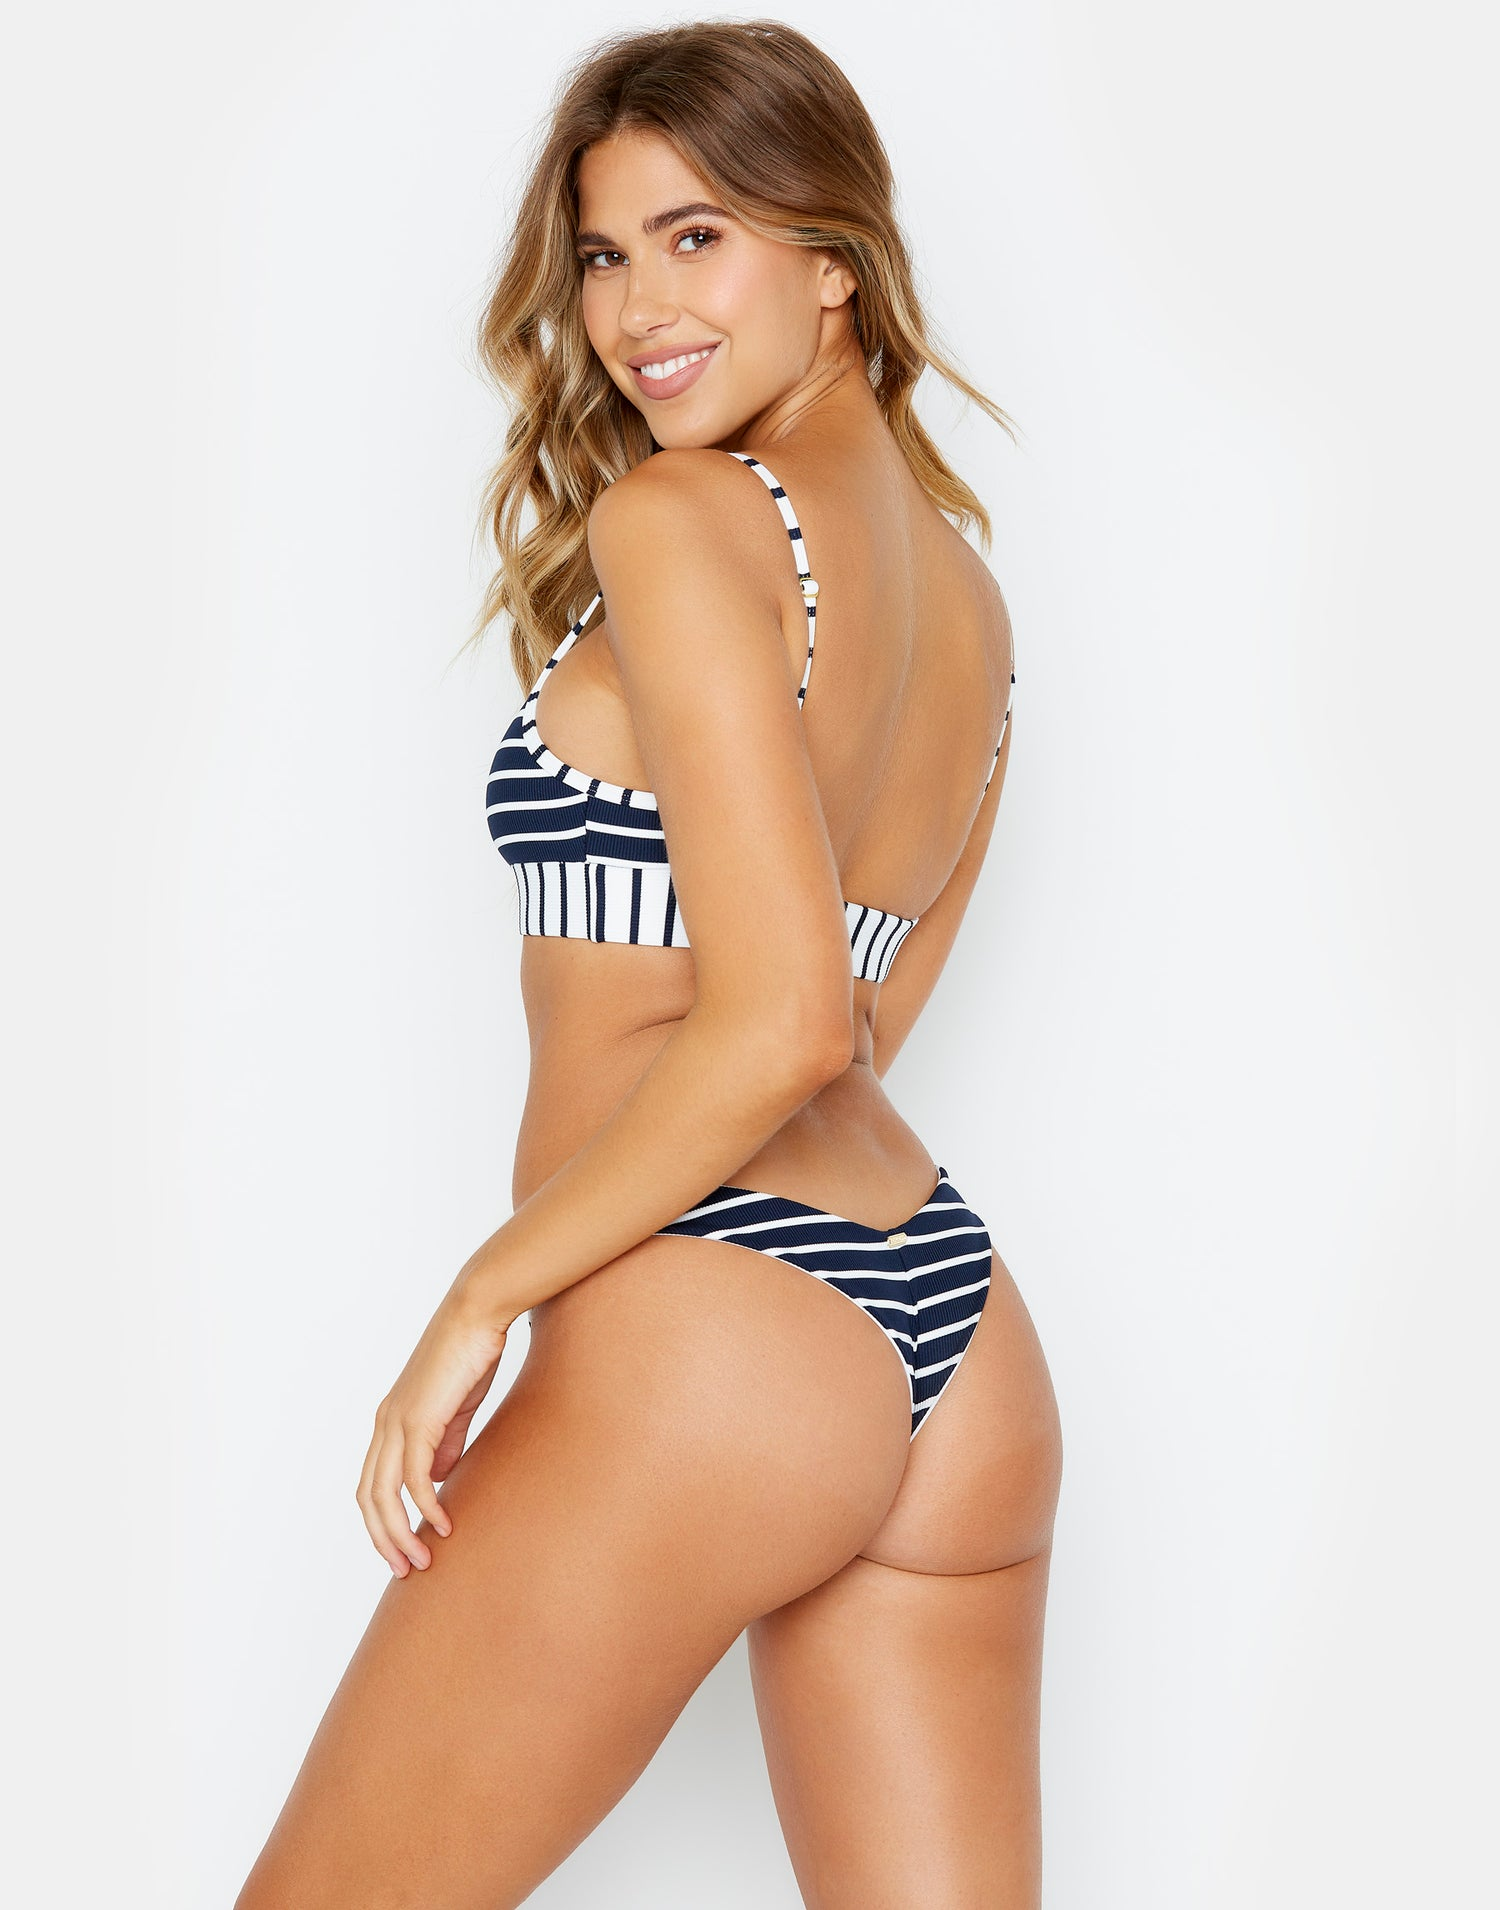 Chrissy Micro Tango Blue Striped Bikini Bottom Back View